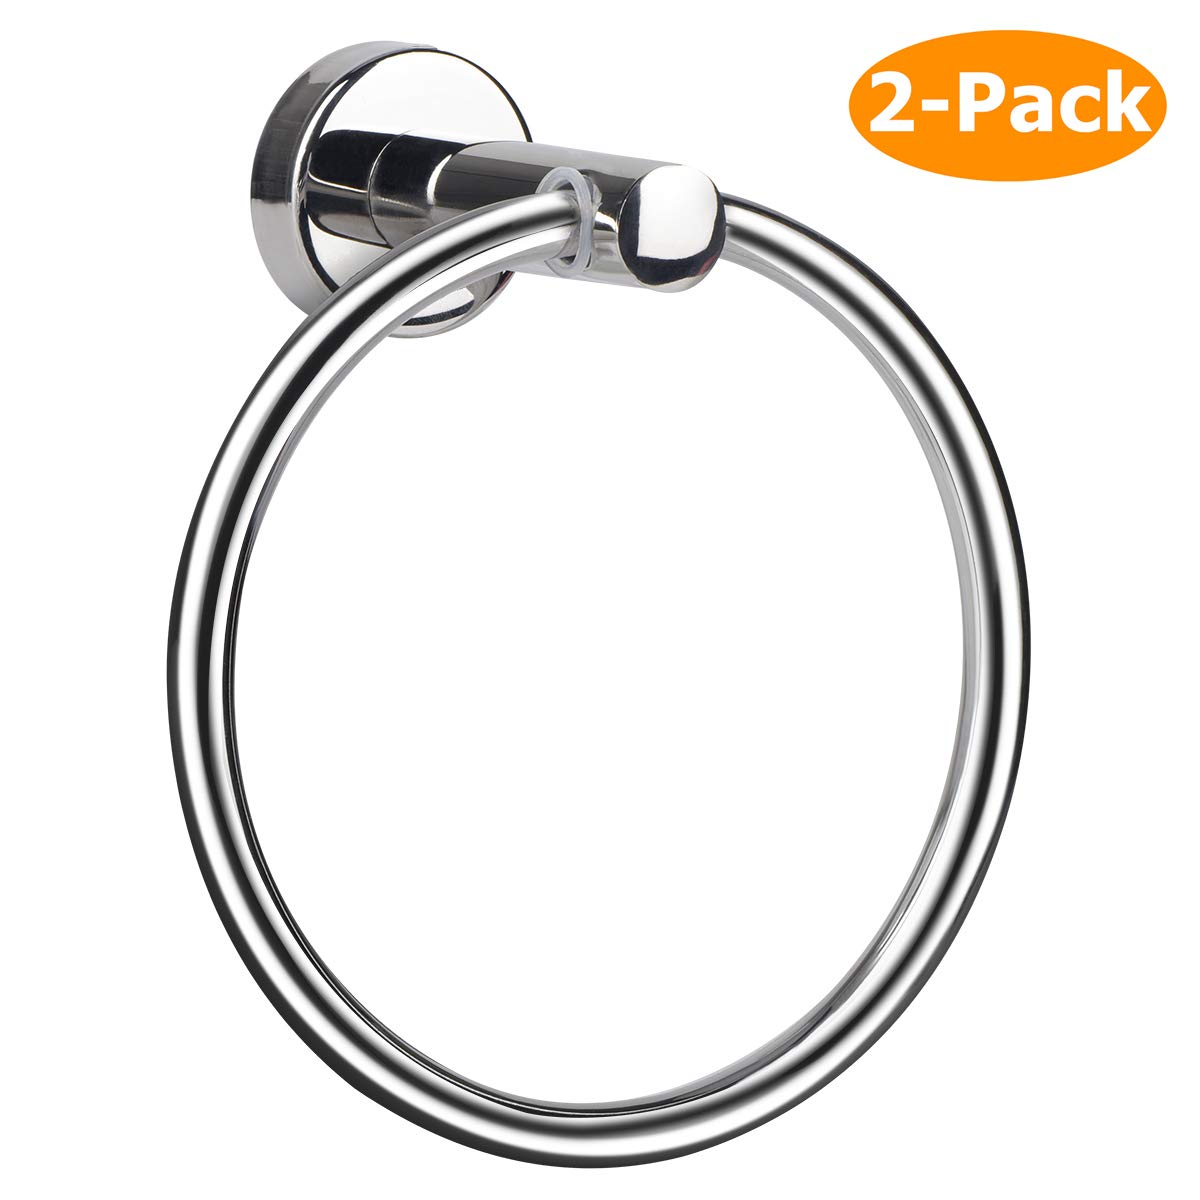 Towel Ring, Hand Towel Holder Ring Hanger for Bathroom Kitchen, Round Towel Rack Hook Rings with Wall Mounted Hardware, Silver Rustproof Polished 304 Stainless Steel (2 Pack, Drill Needed) by MongFun